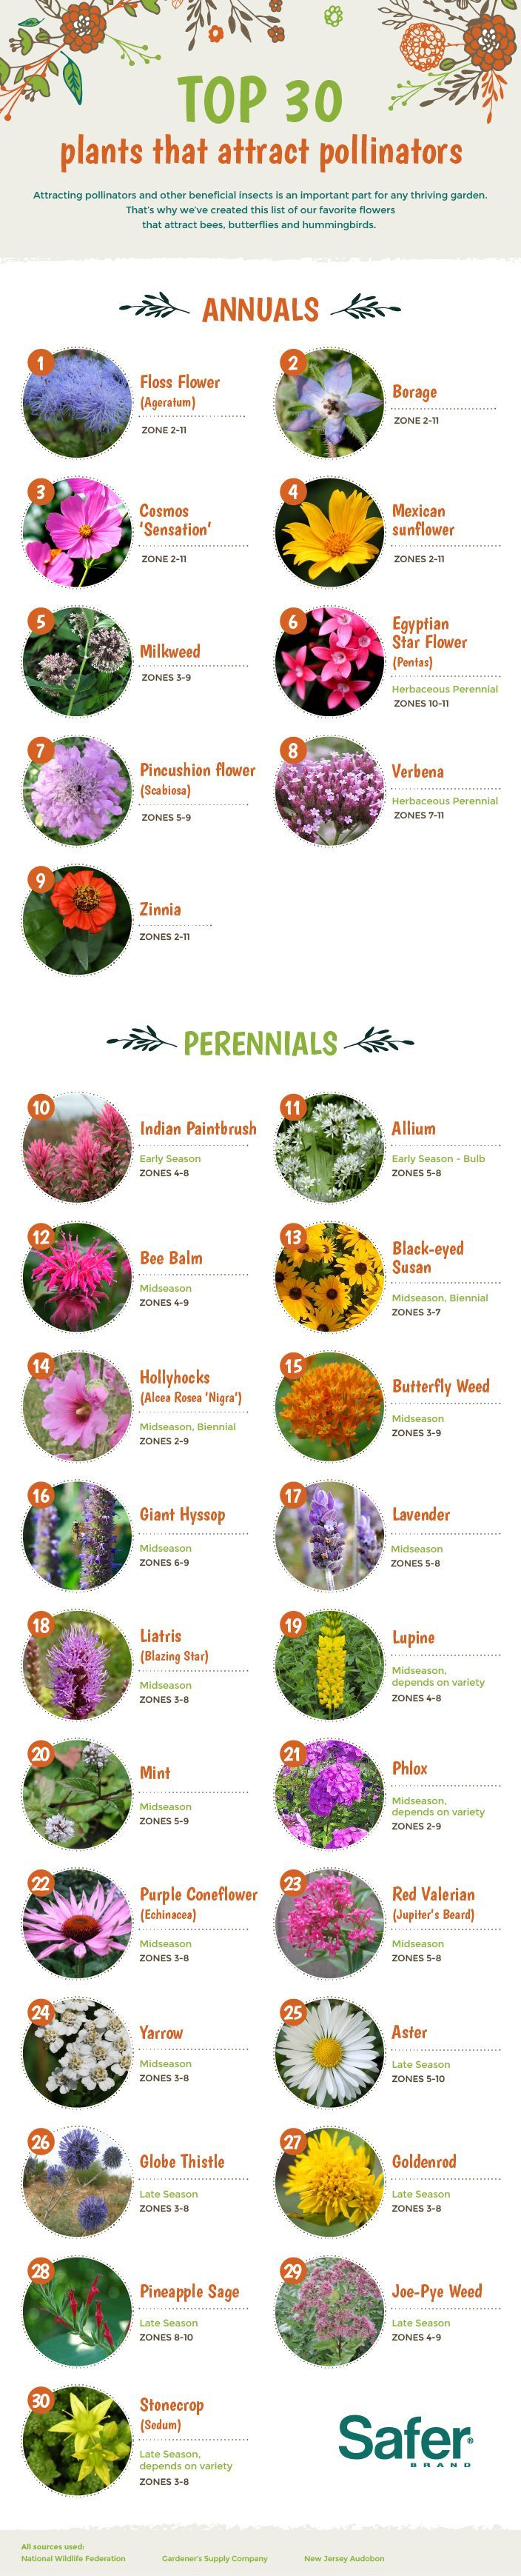 Top 30 plants that attract bees, butterflies and hummingbirds - #pollinators #infographic #flowers